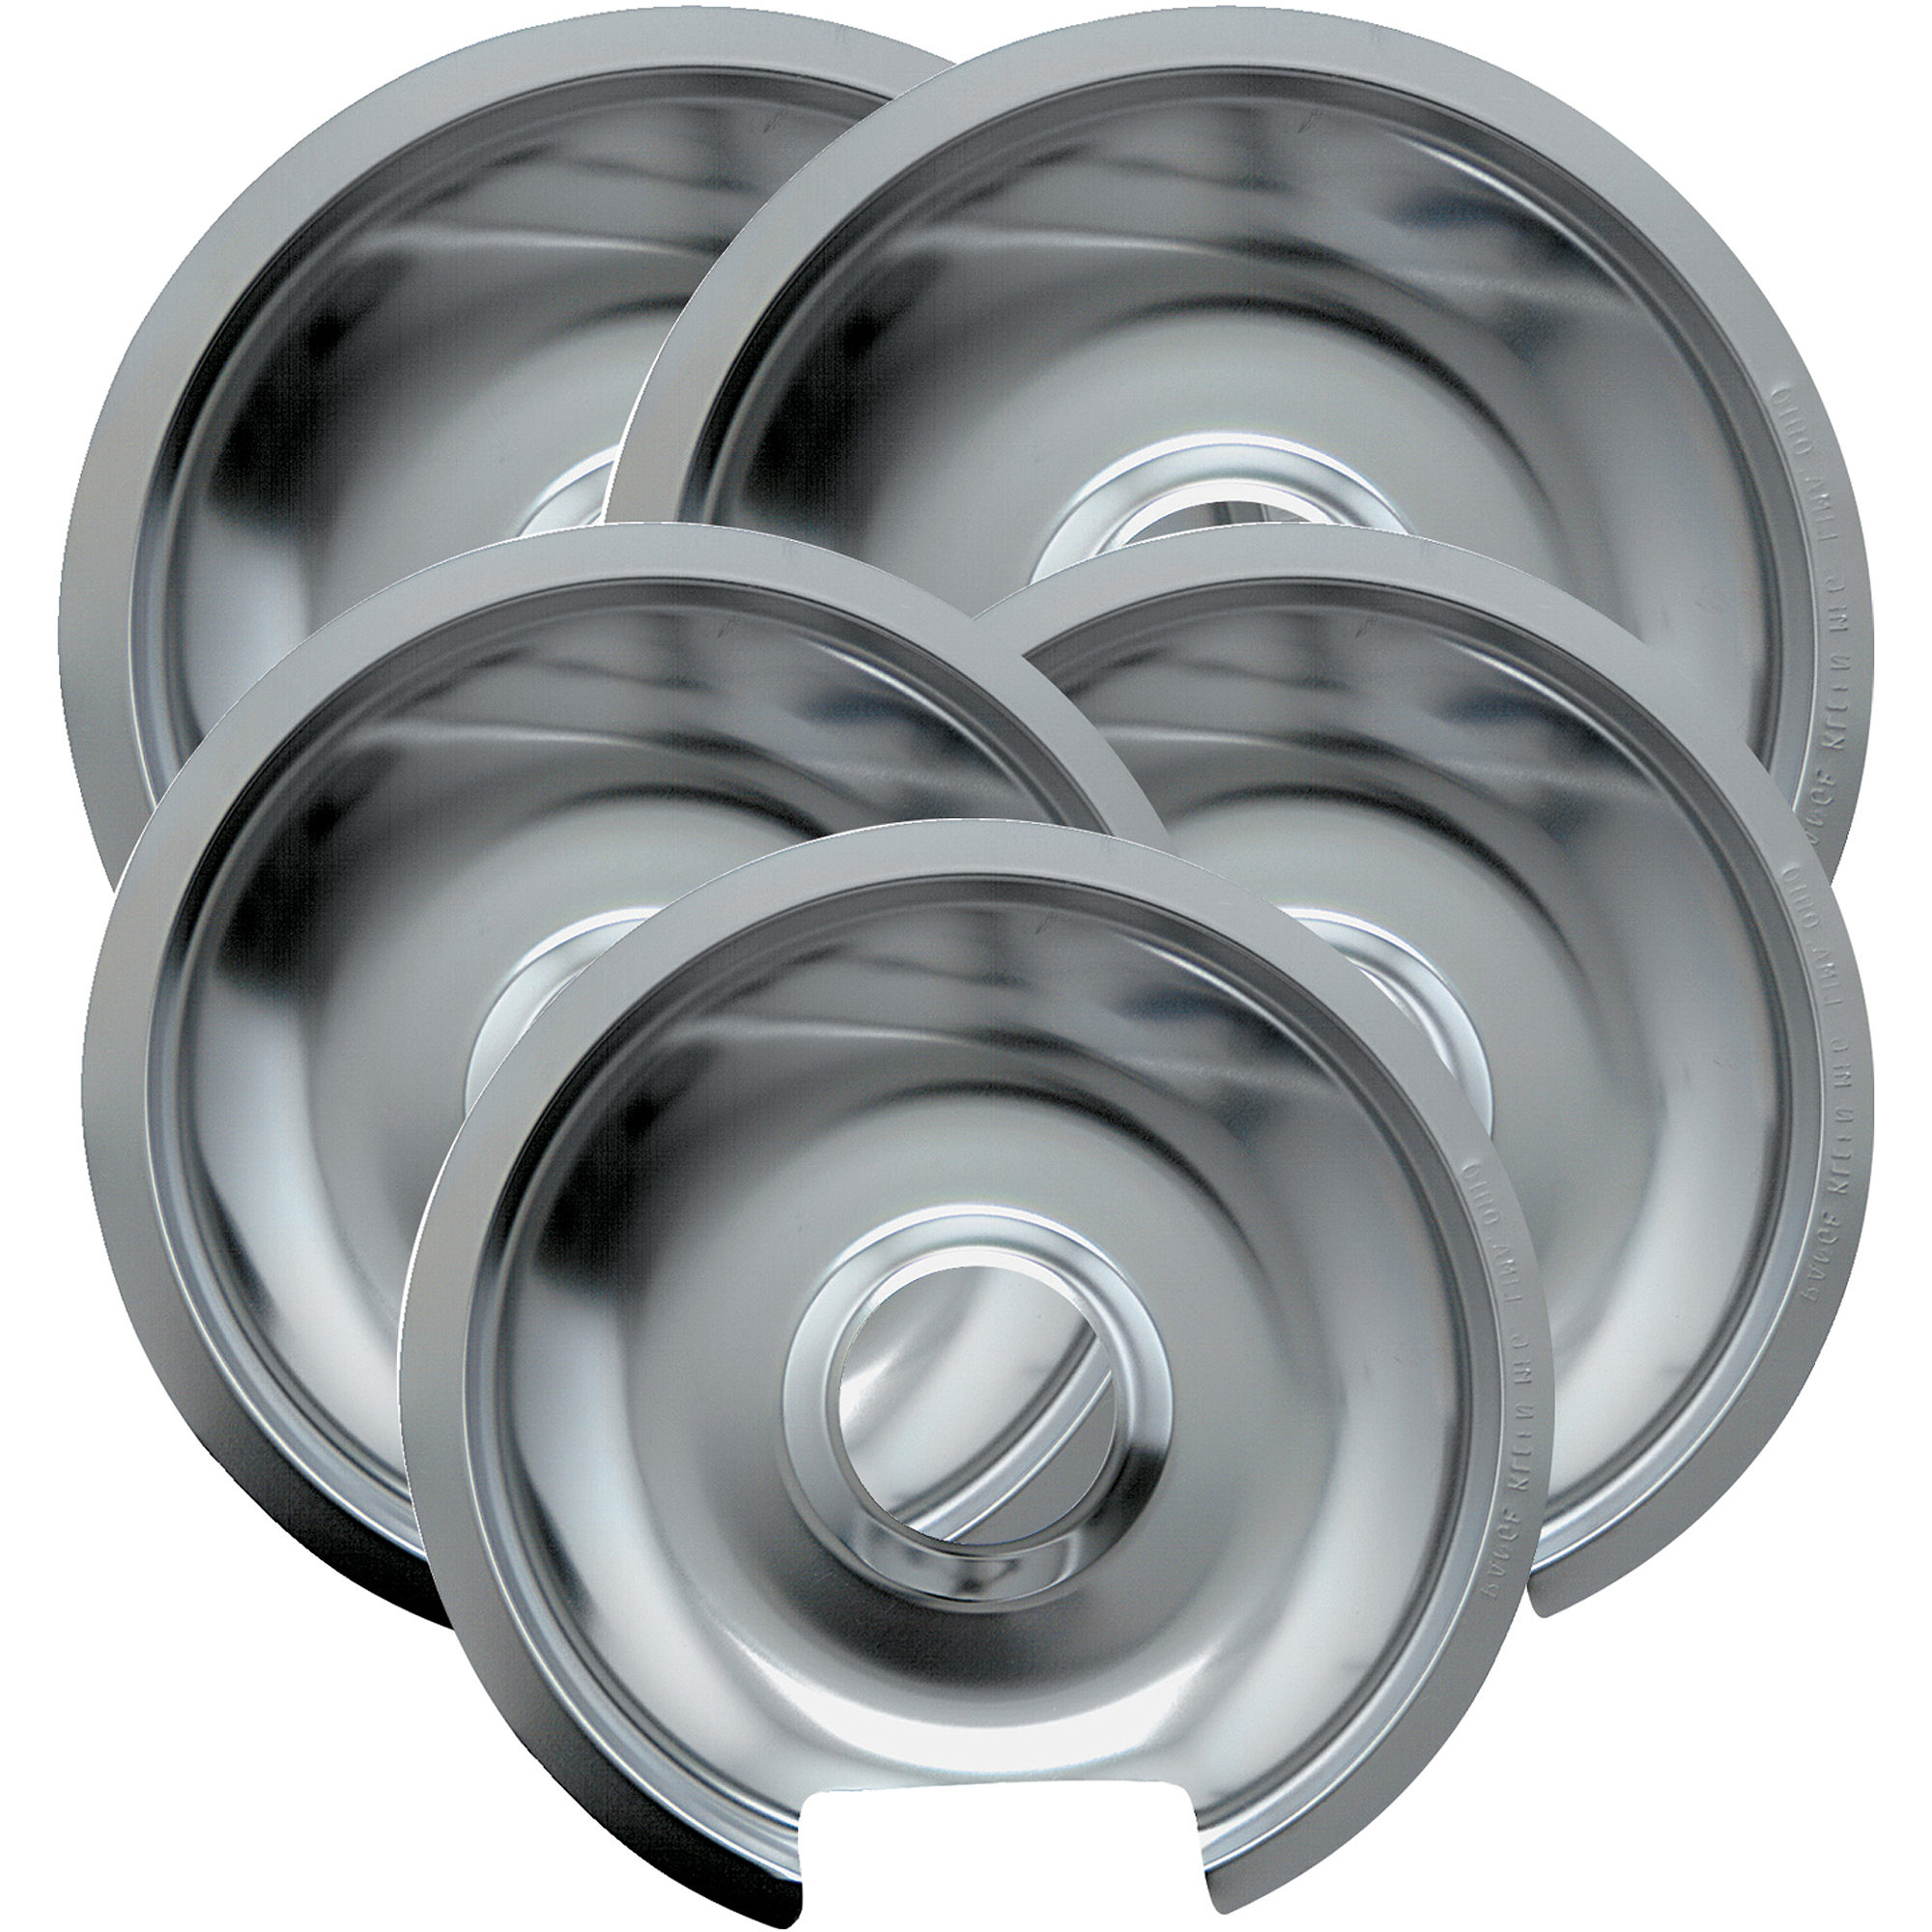 Range Kleen 5-Piece Drip Pan, Style D fits Hinged Electric Ranges GE/Hotpoint/Kenmore, Chrome